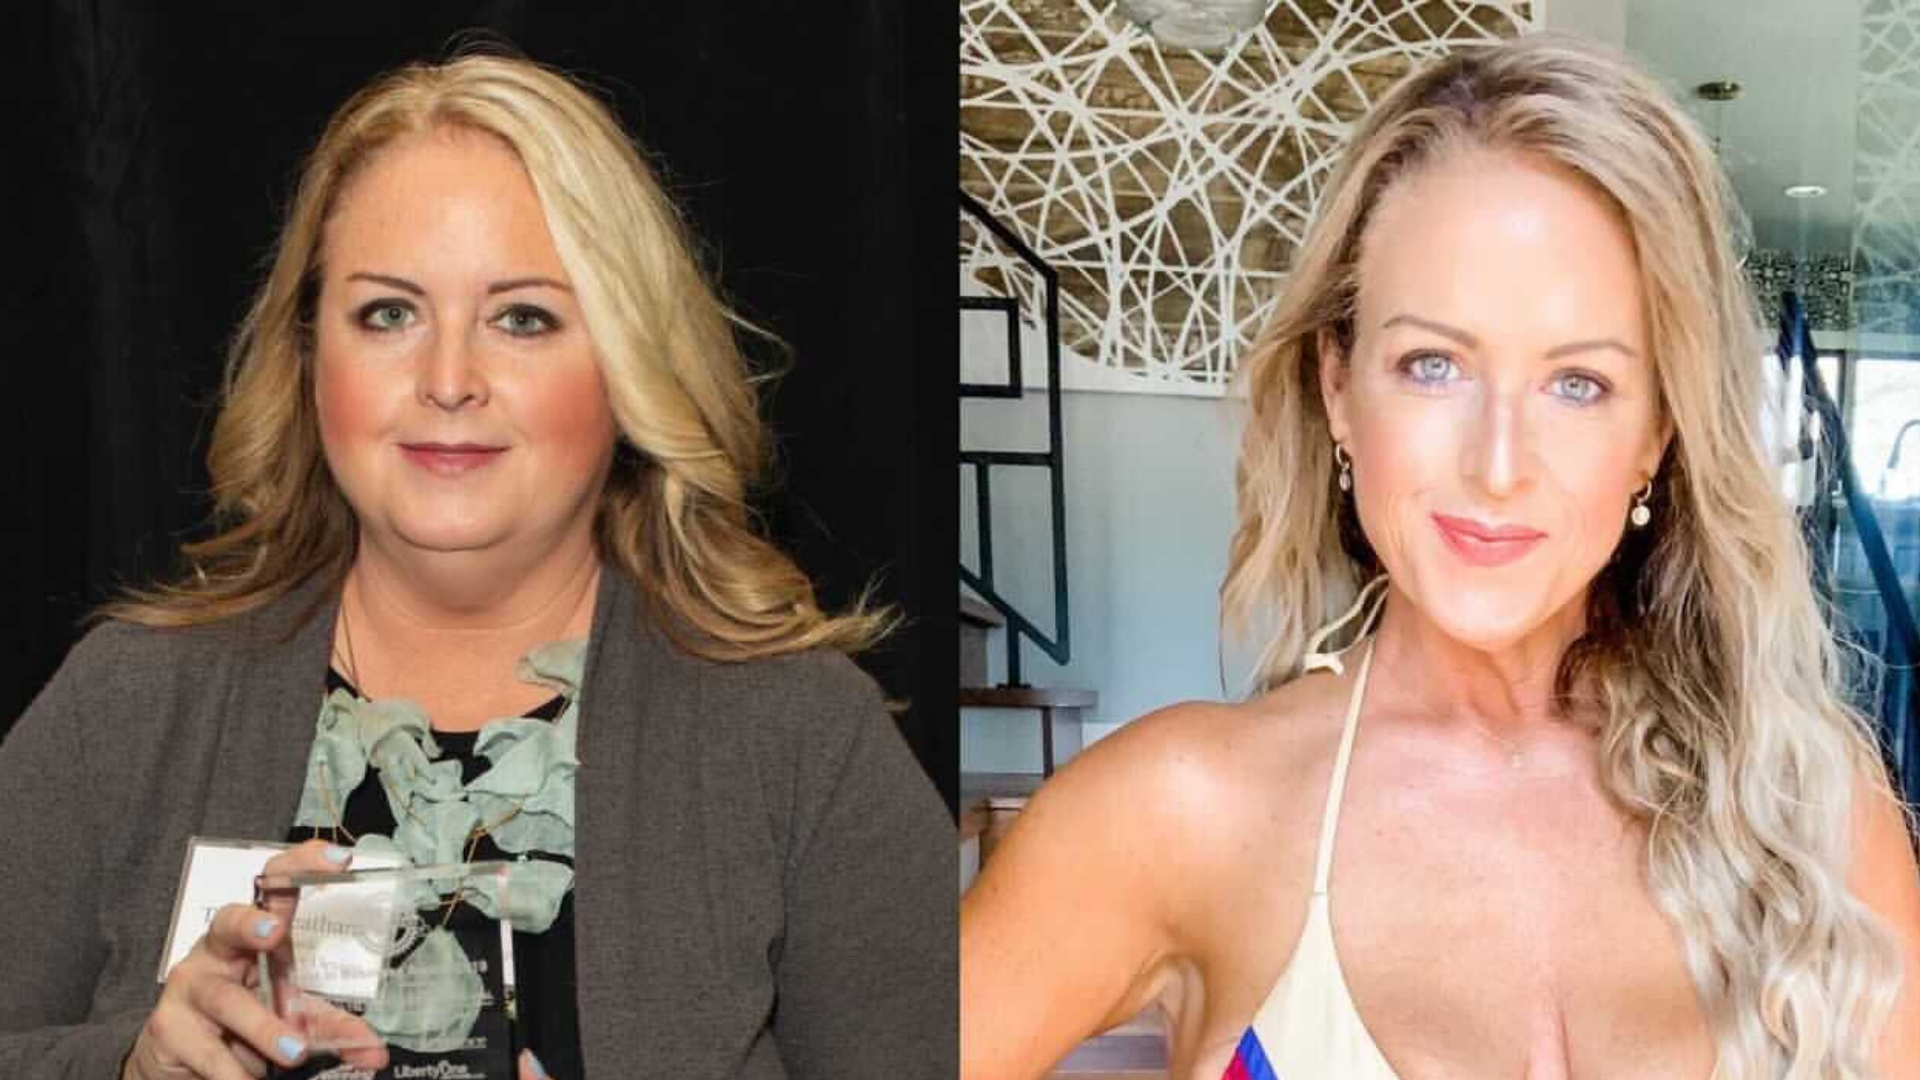 How A Busy Single Mom and CEO Lost 80 lbs During The Pandemic and Turned Her Health Around